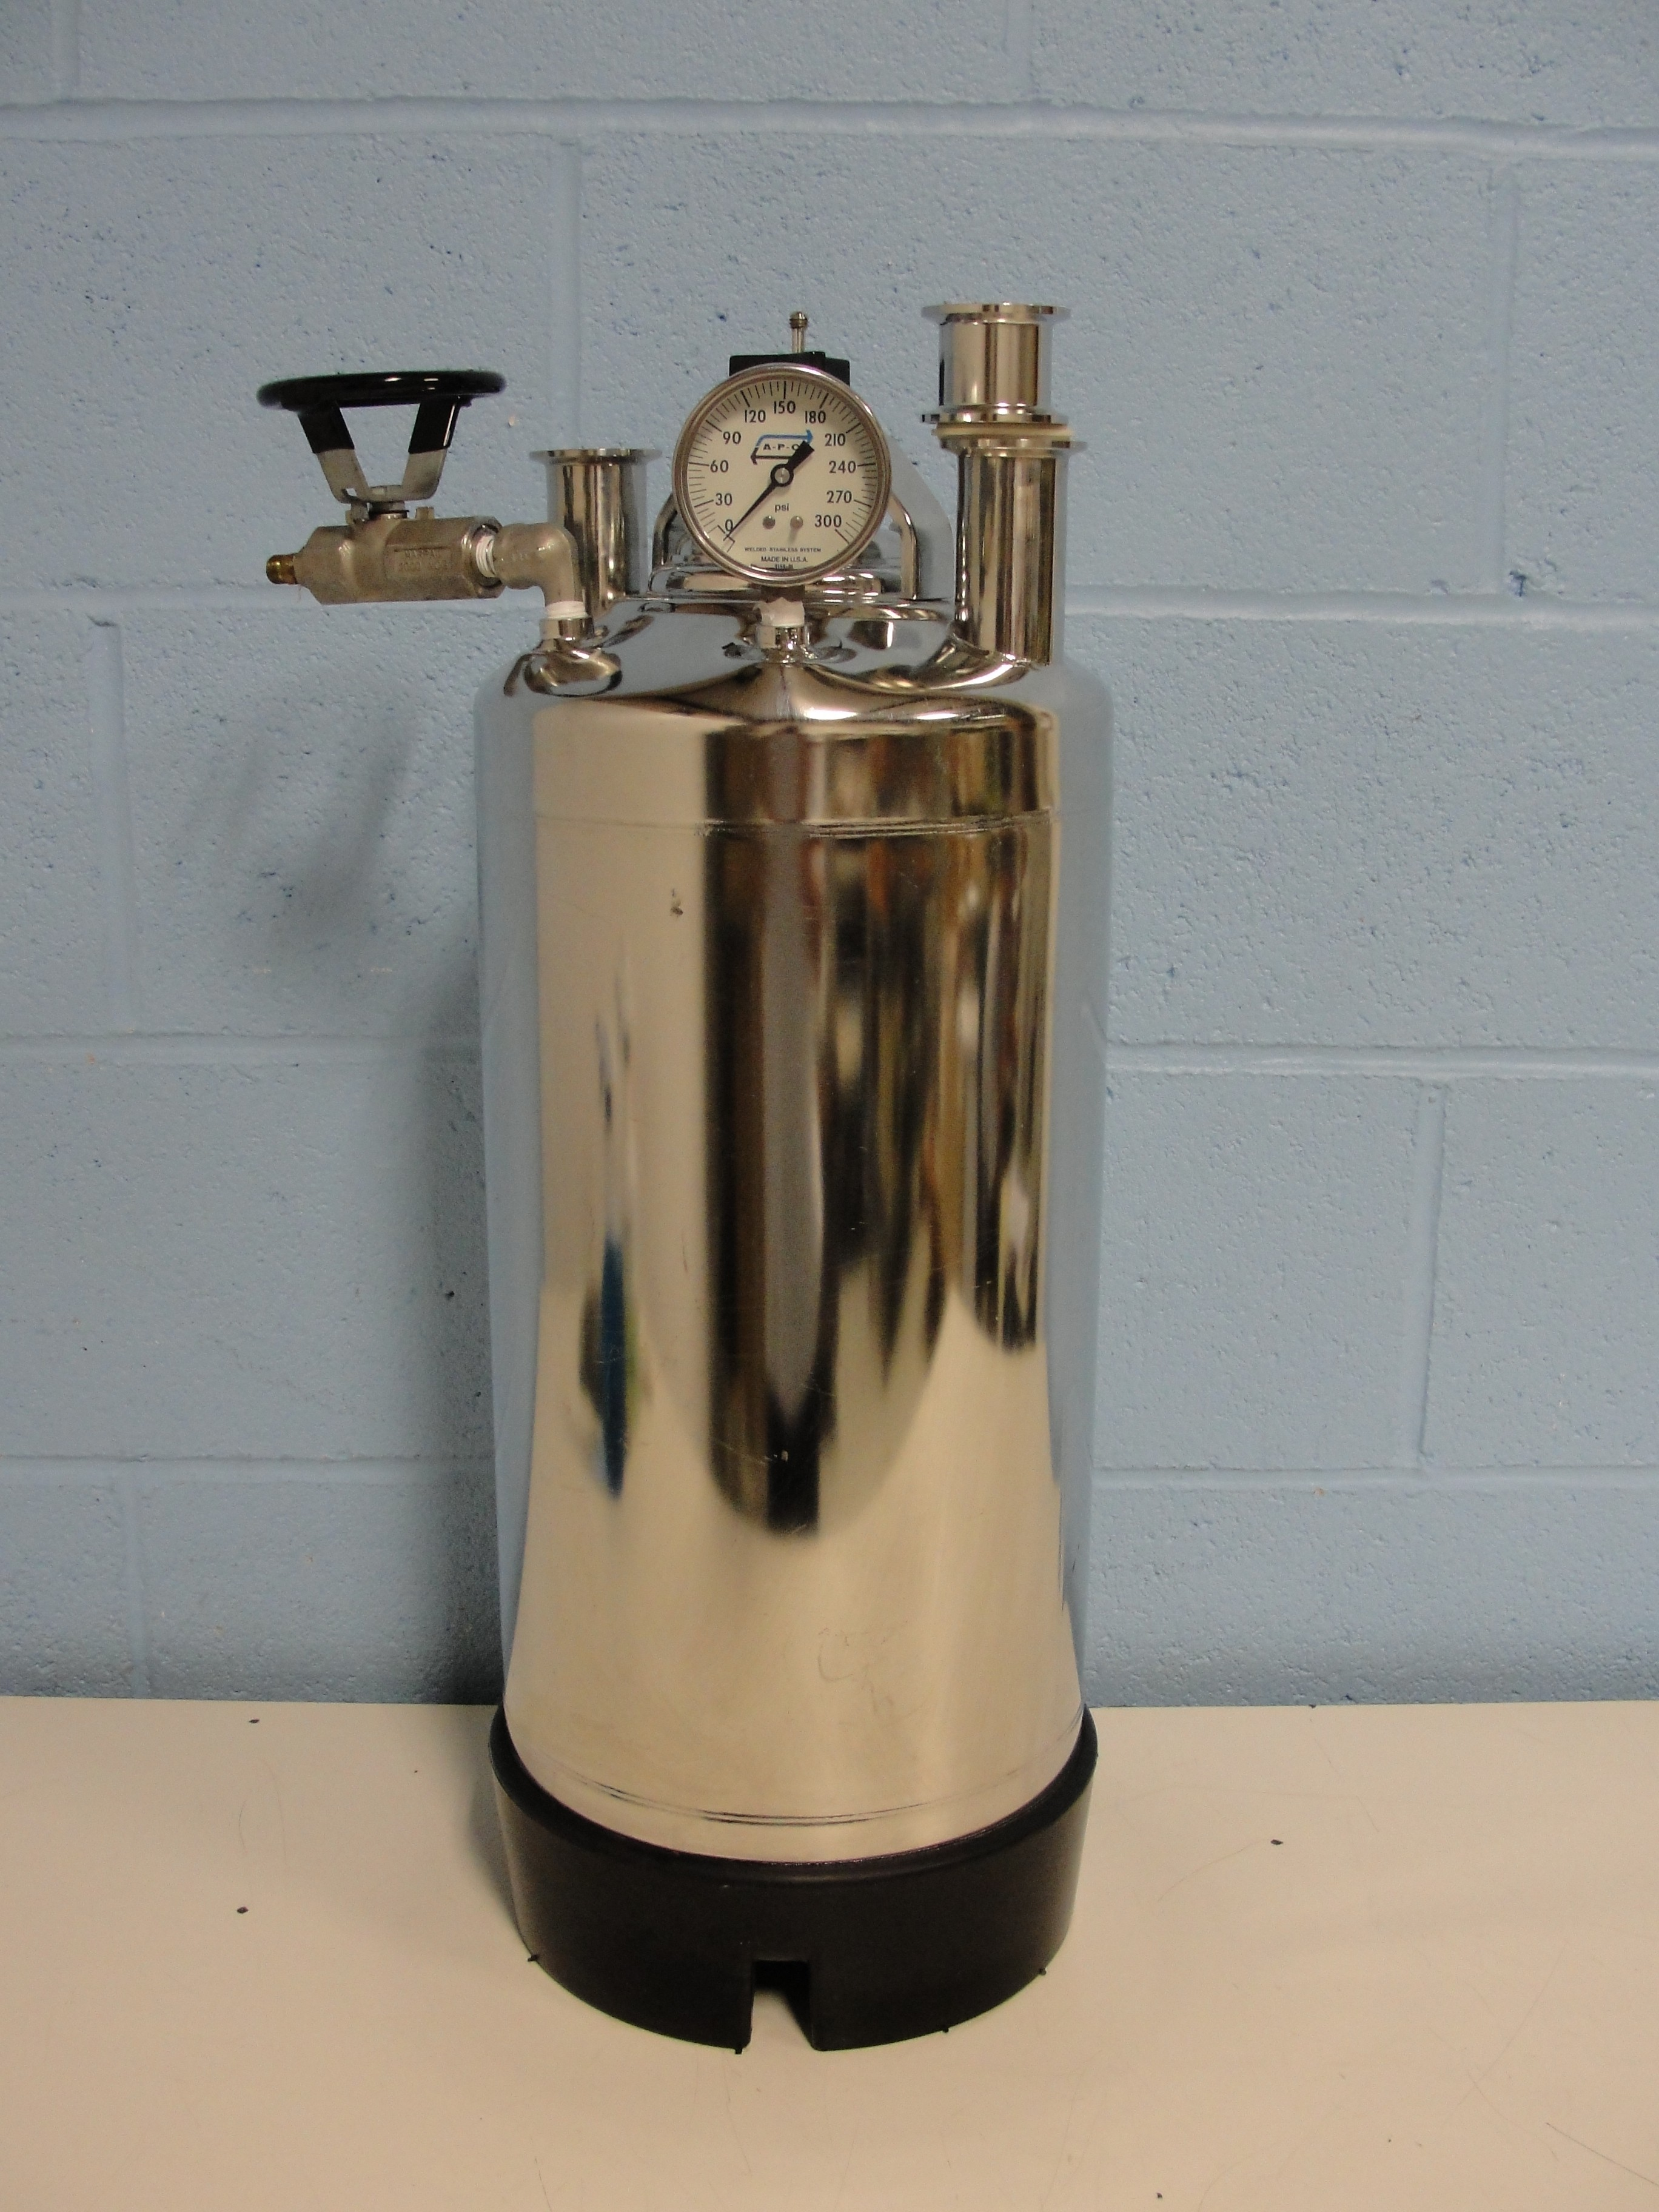 Alloy Products Corp. T-316 Stainless Steel Vessel Image